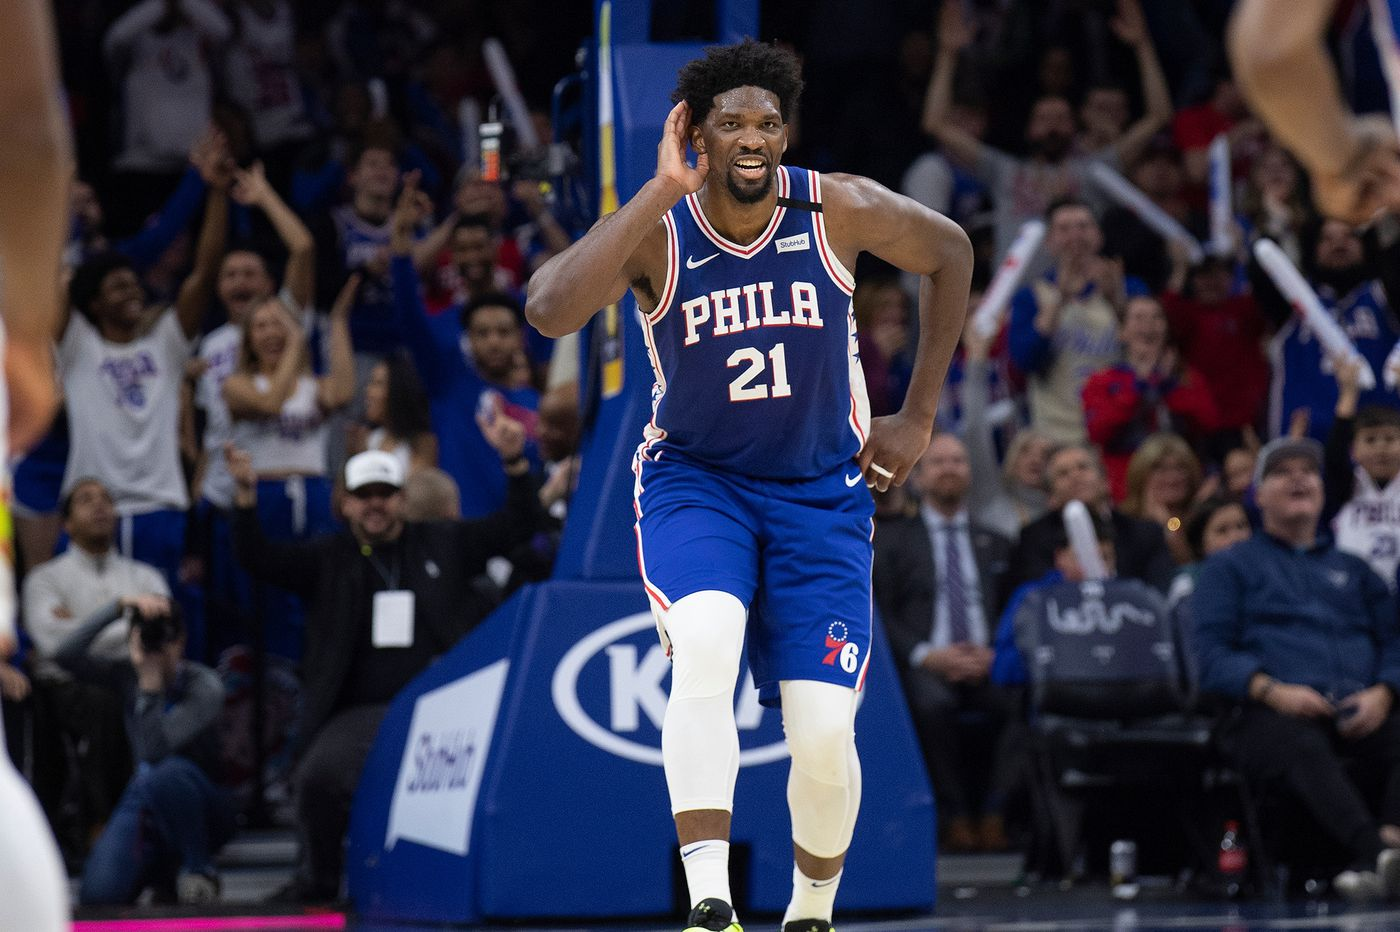 Don't sleep on the Sixers, even in their current form | David Murphy